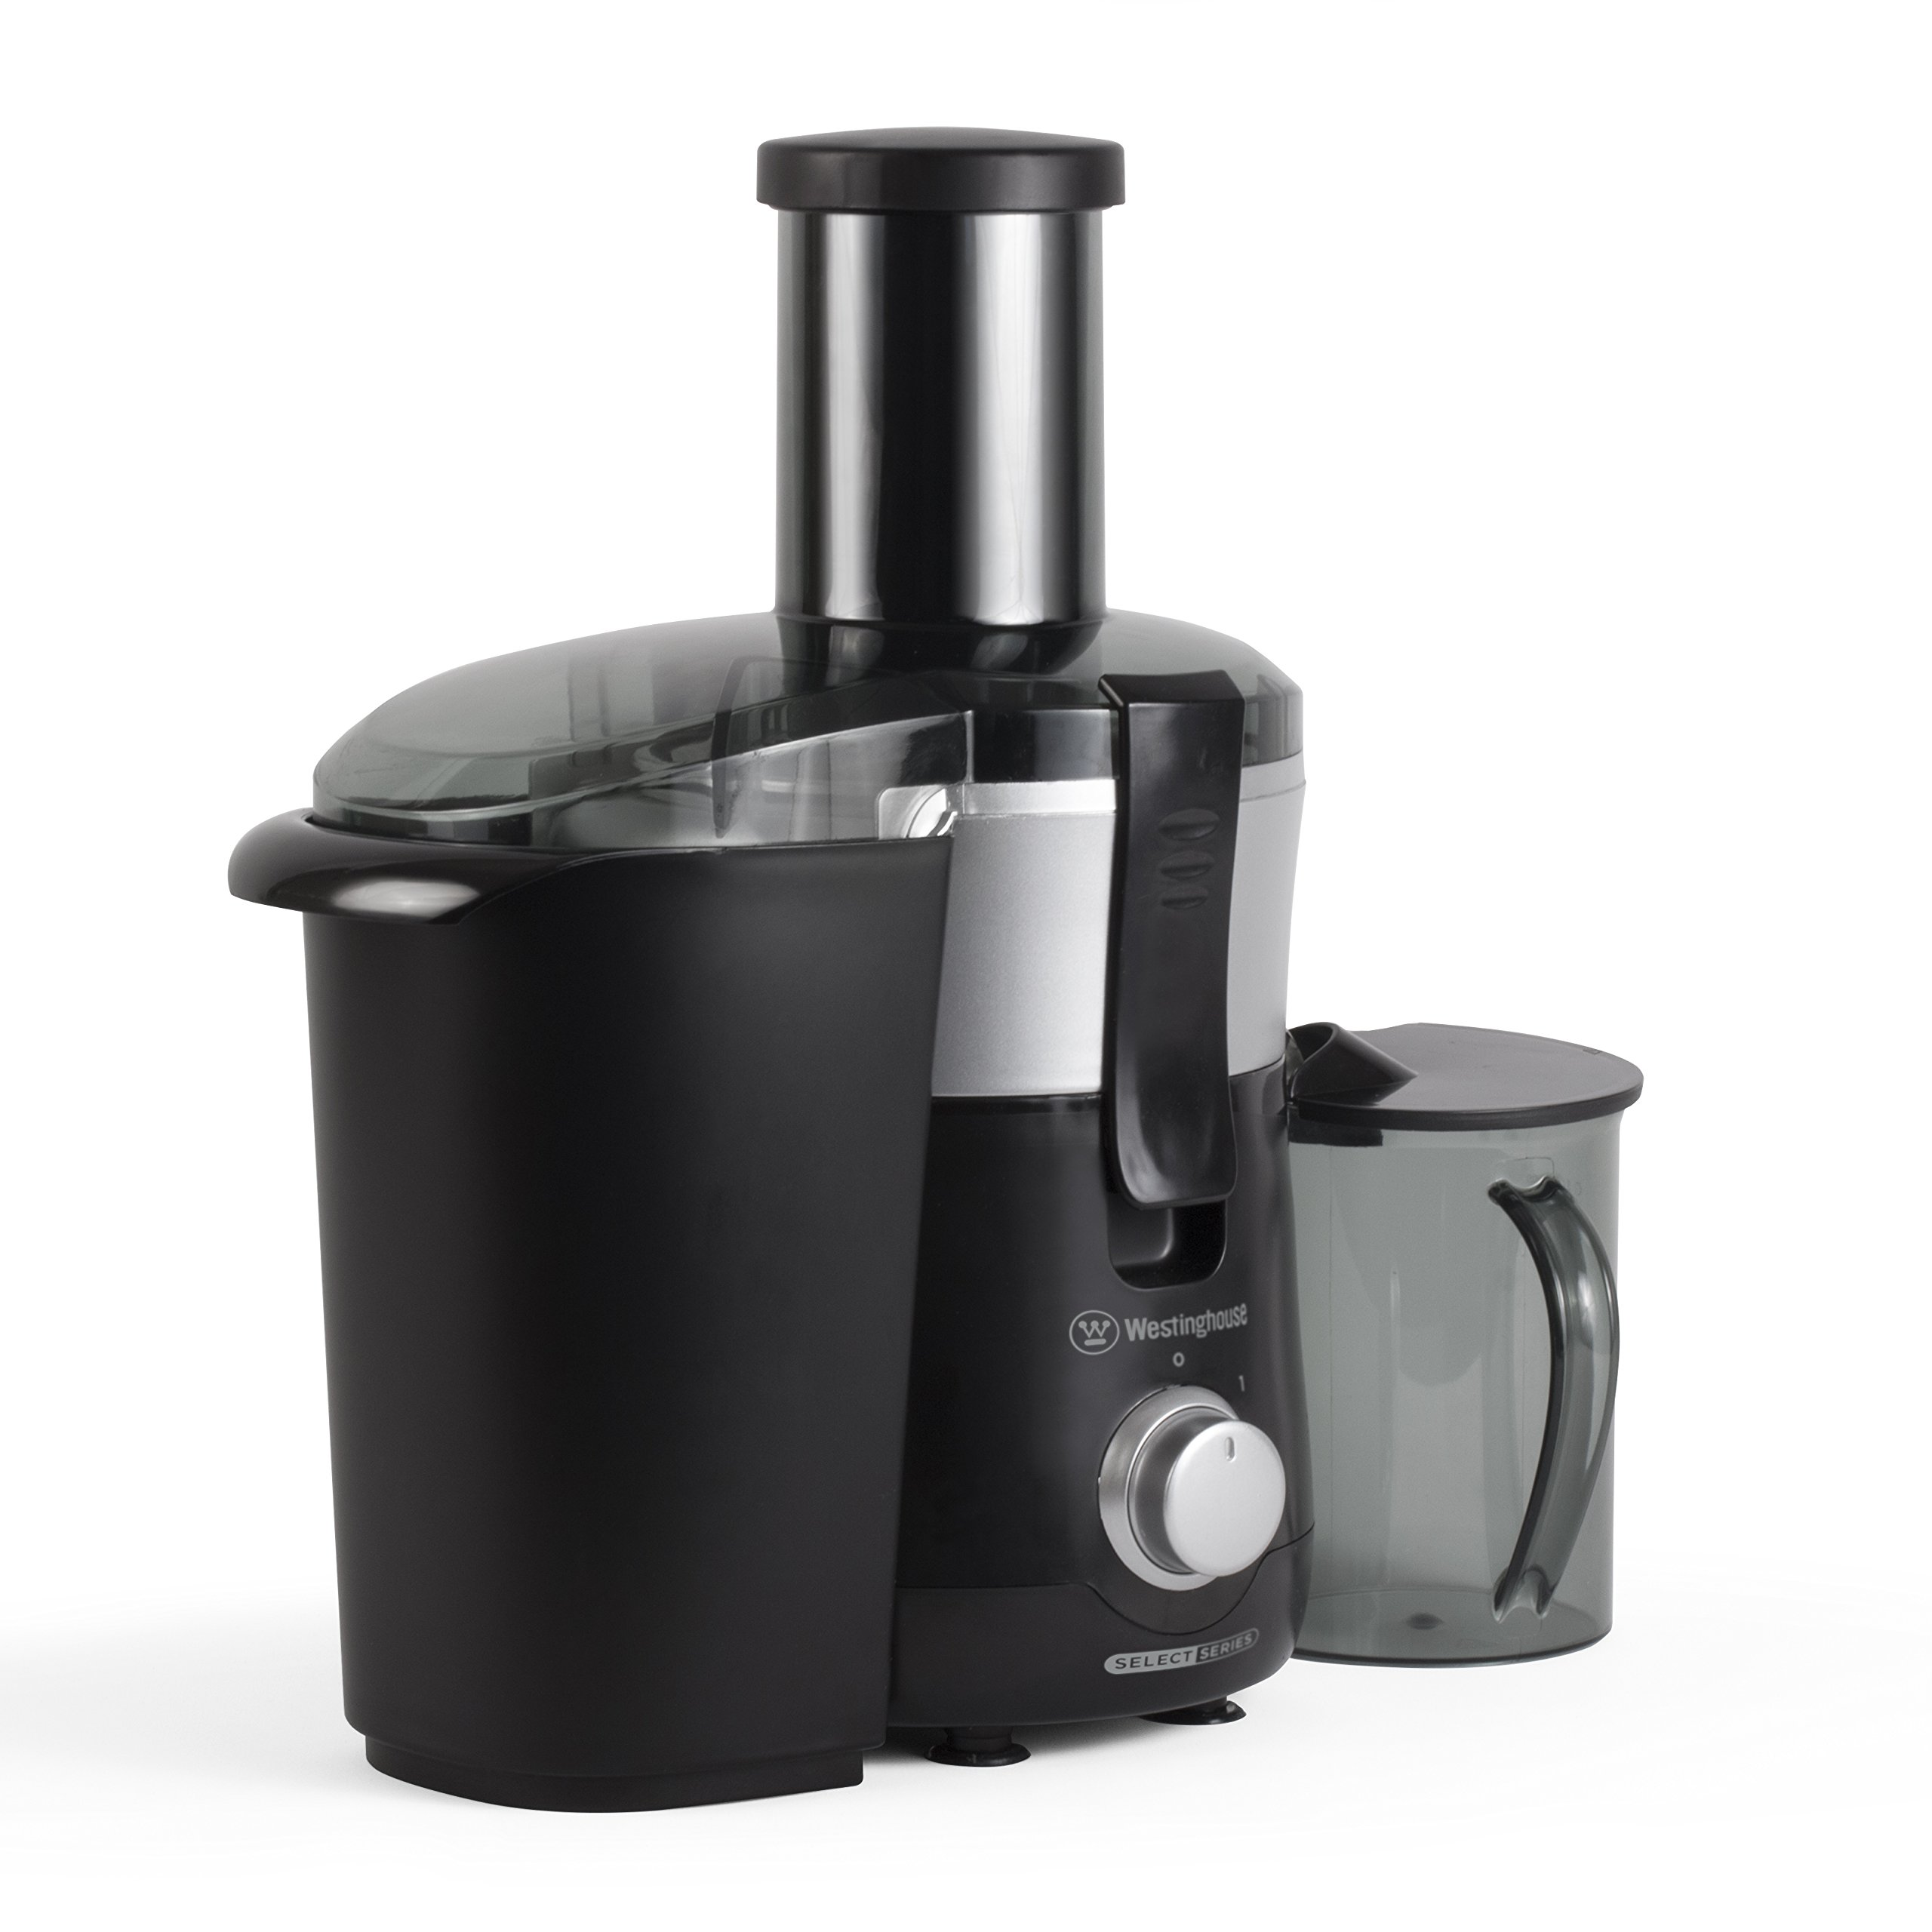 Westinghouse COMINHKPR100901 WJE2BSLA Select Series 2 Speed Fruit & Vegetable Juice Extractor with Custom Pitcher, Black by Westinghouse (Image #6)